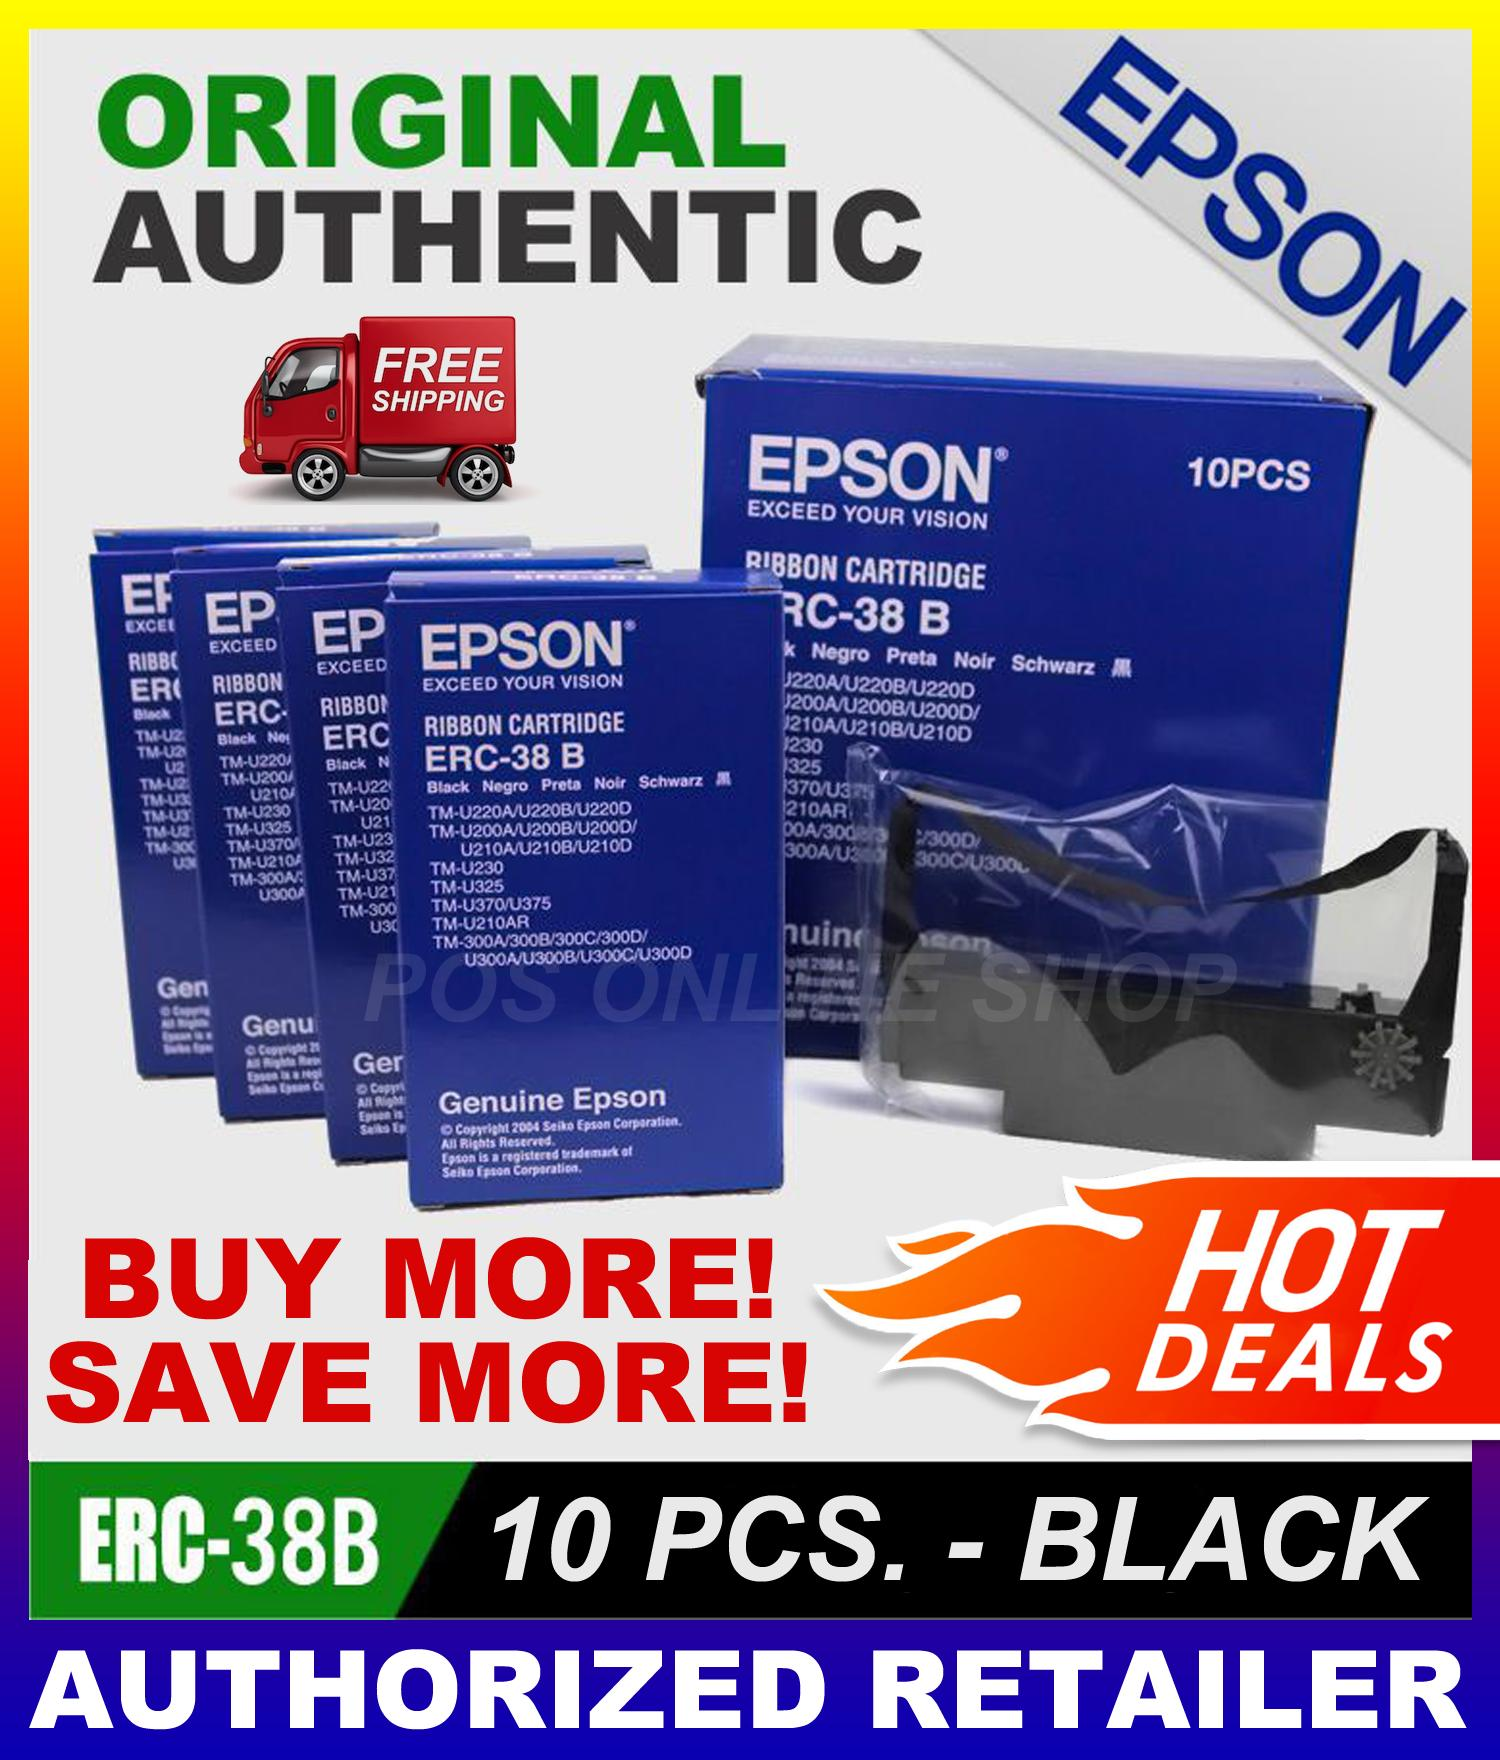 Epson ERC-38 B Ribbon Cartridge (10 PCS ) ORIGINAL AUTHENTIC ERC-38 (FREE  SHIPPING FOR 2 ORDERS AND ABOVE) NCR & LUZON AREAS